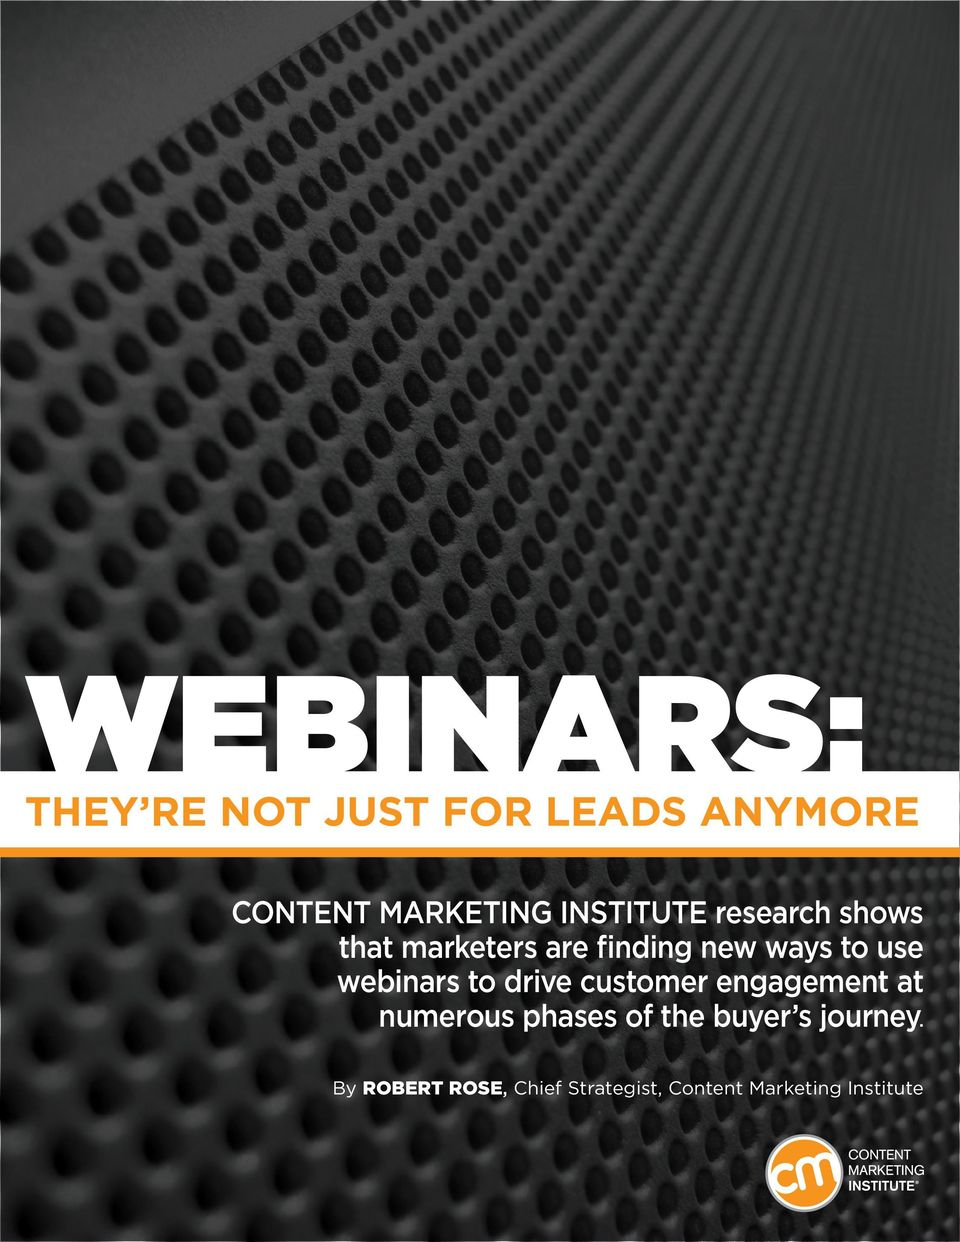 webinars to drive customer engagement at numerous phases of the